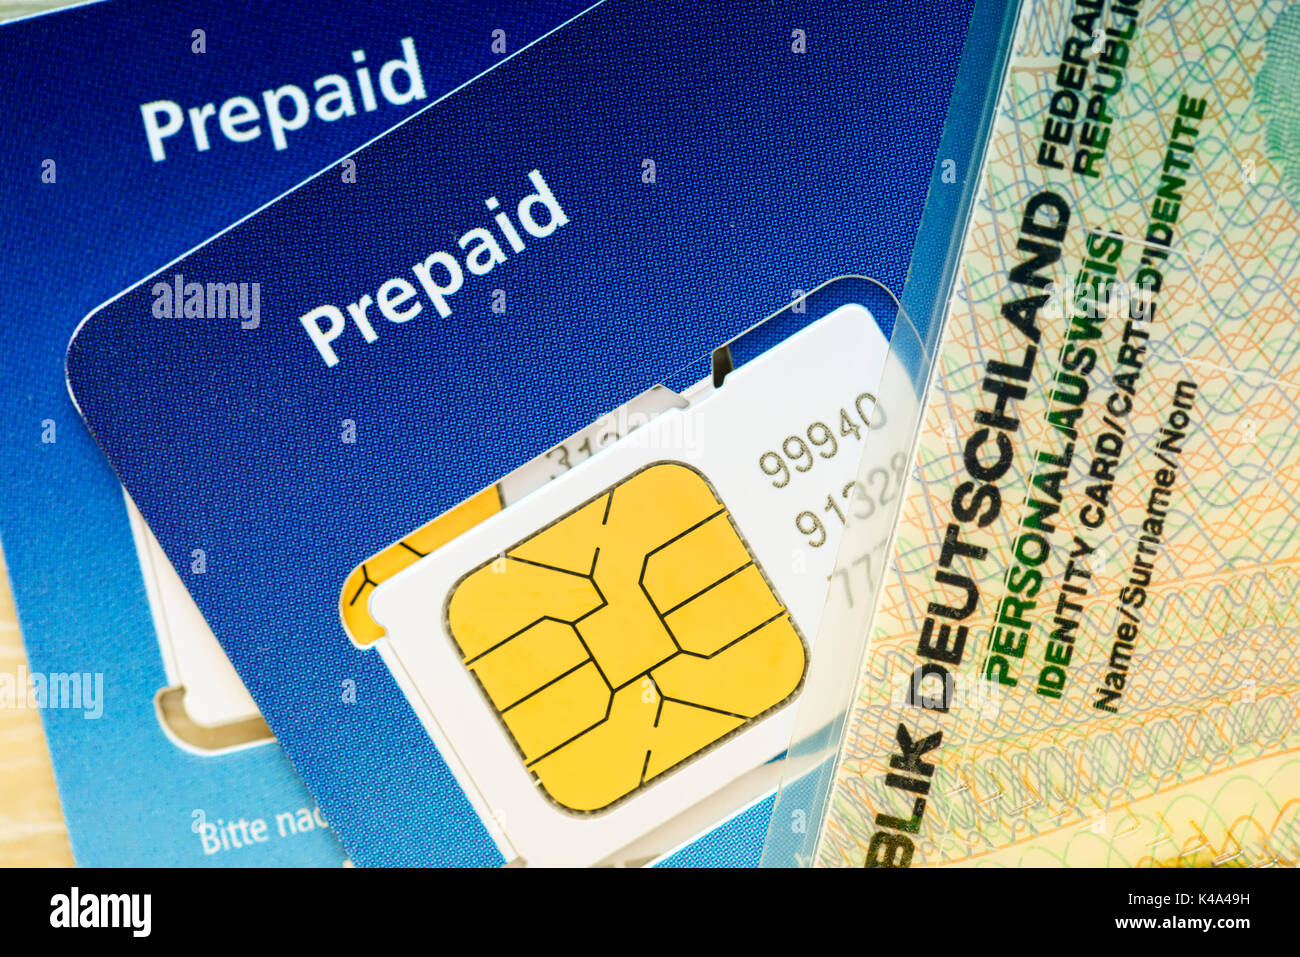 Prepaid Cards And German Identity Card - Stock Image